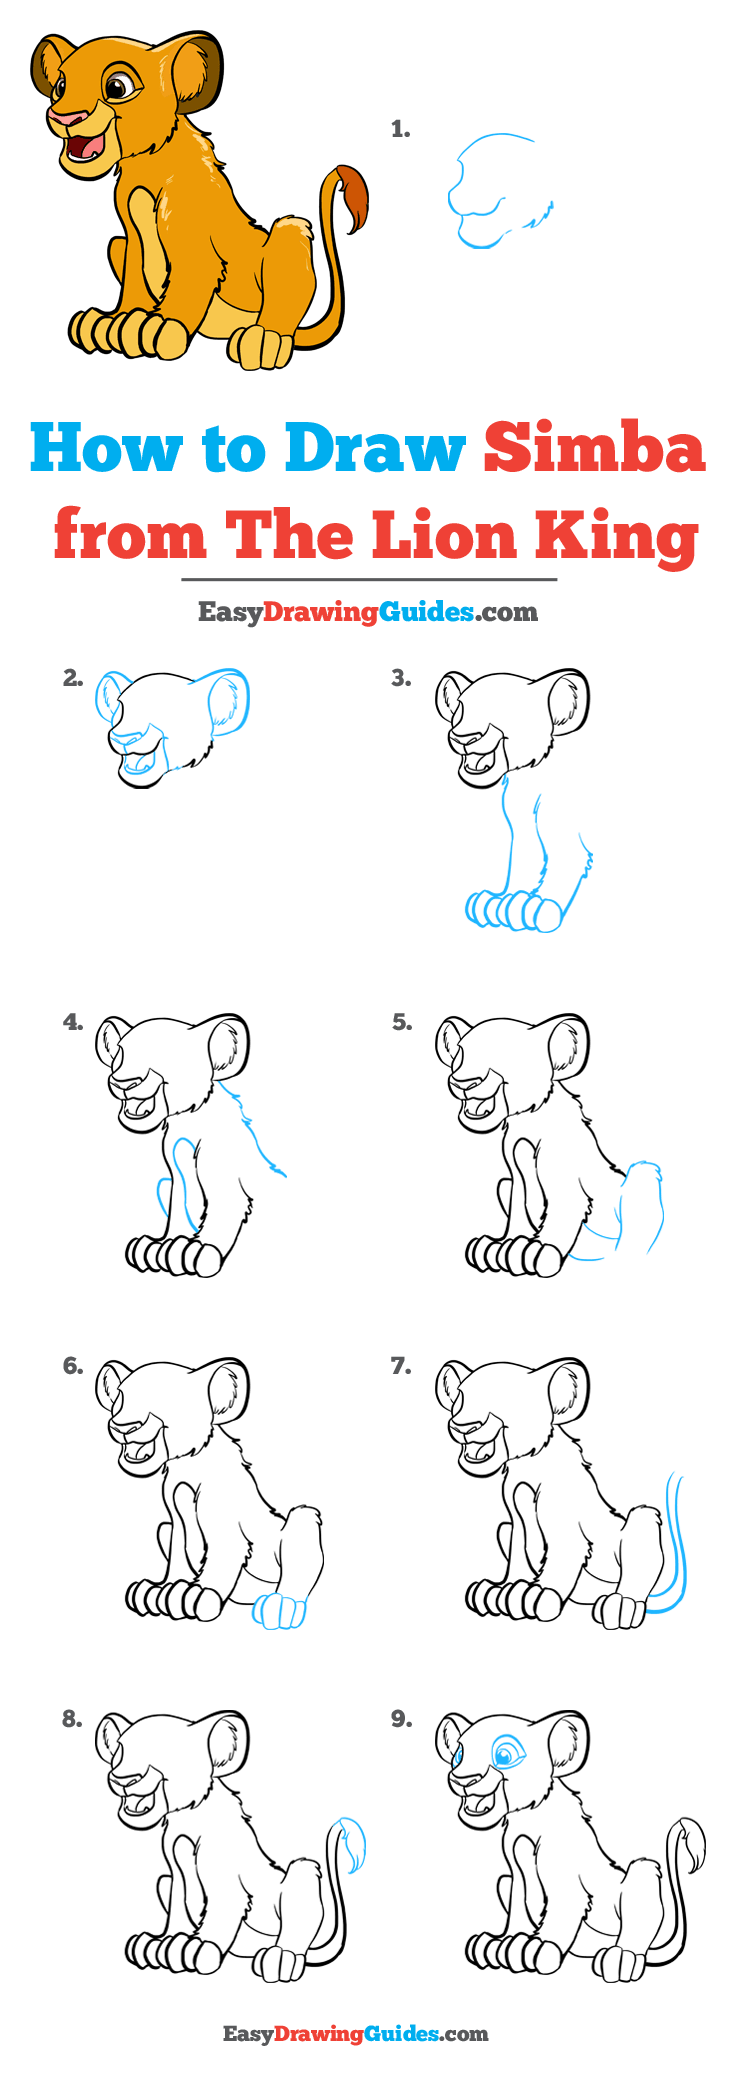 How to Draw Simba from the Lion King Step by Step Tutorial Image